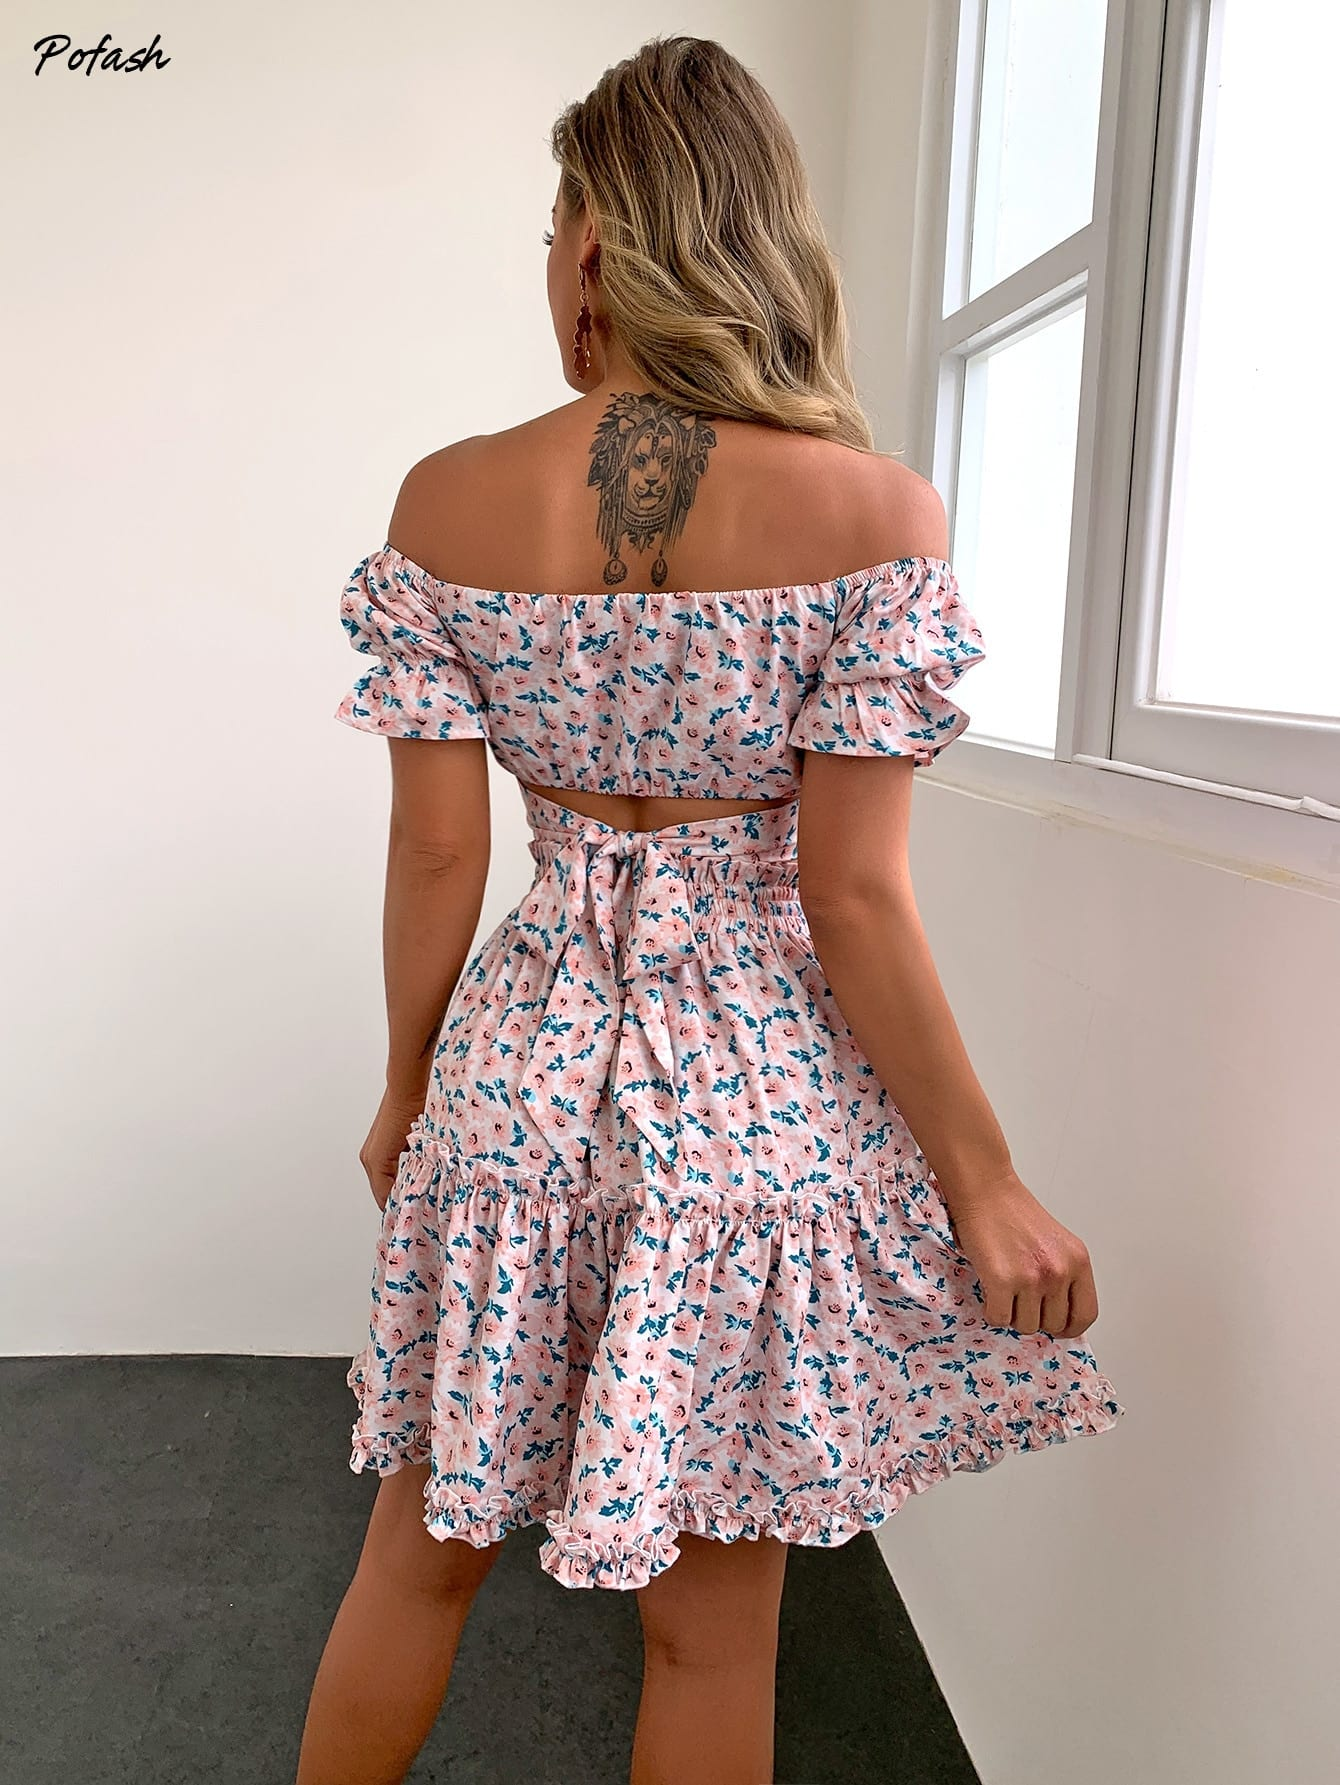 Pofash Orange Floral Print Summer Dress Women Ruffle Puff Sleeves Skirts Set Off Shoulder Lace Up Backless Sexy 2 Piece Outfits